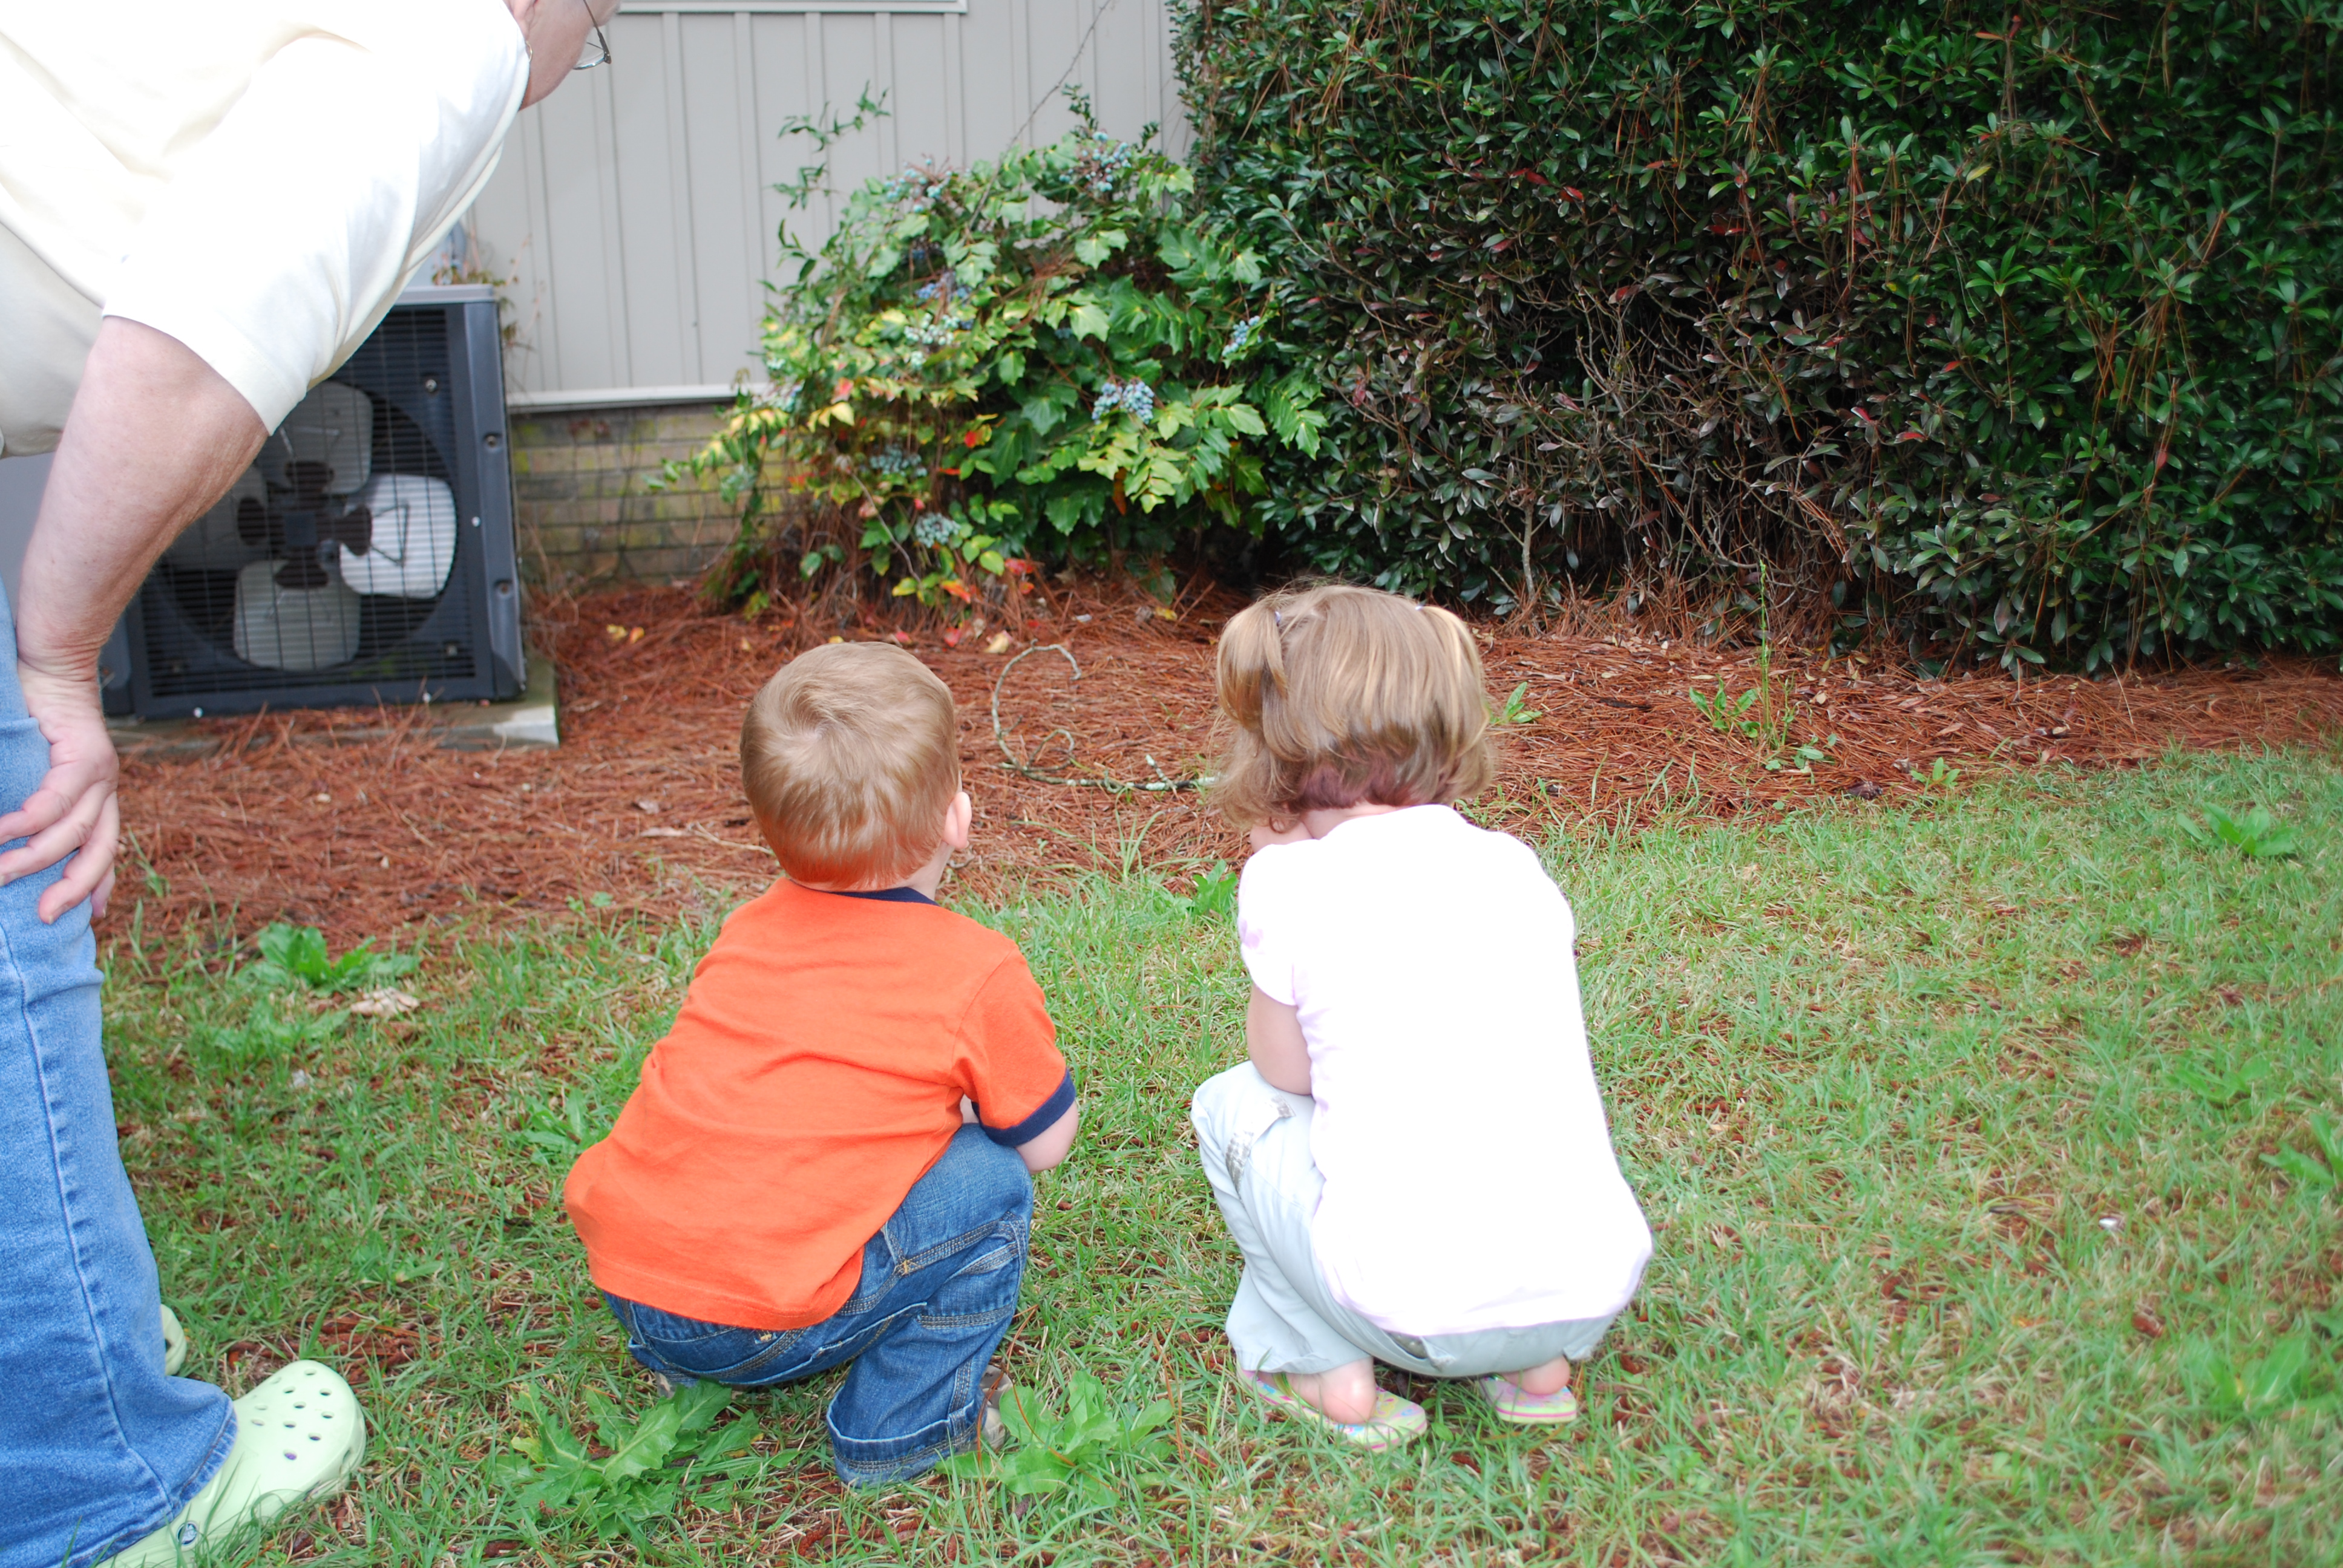 The kids taking a peek at what is under the bush